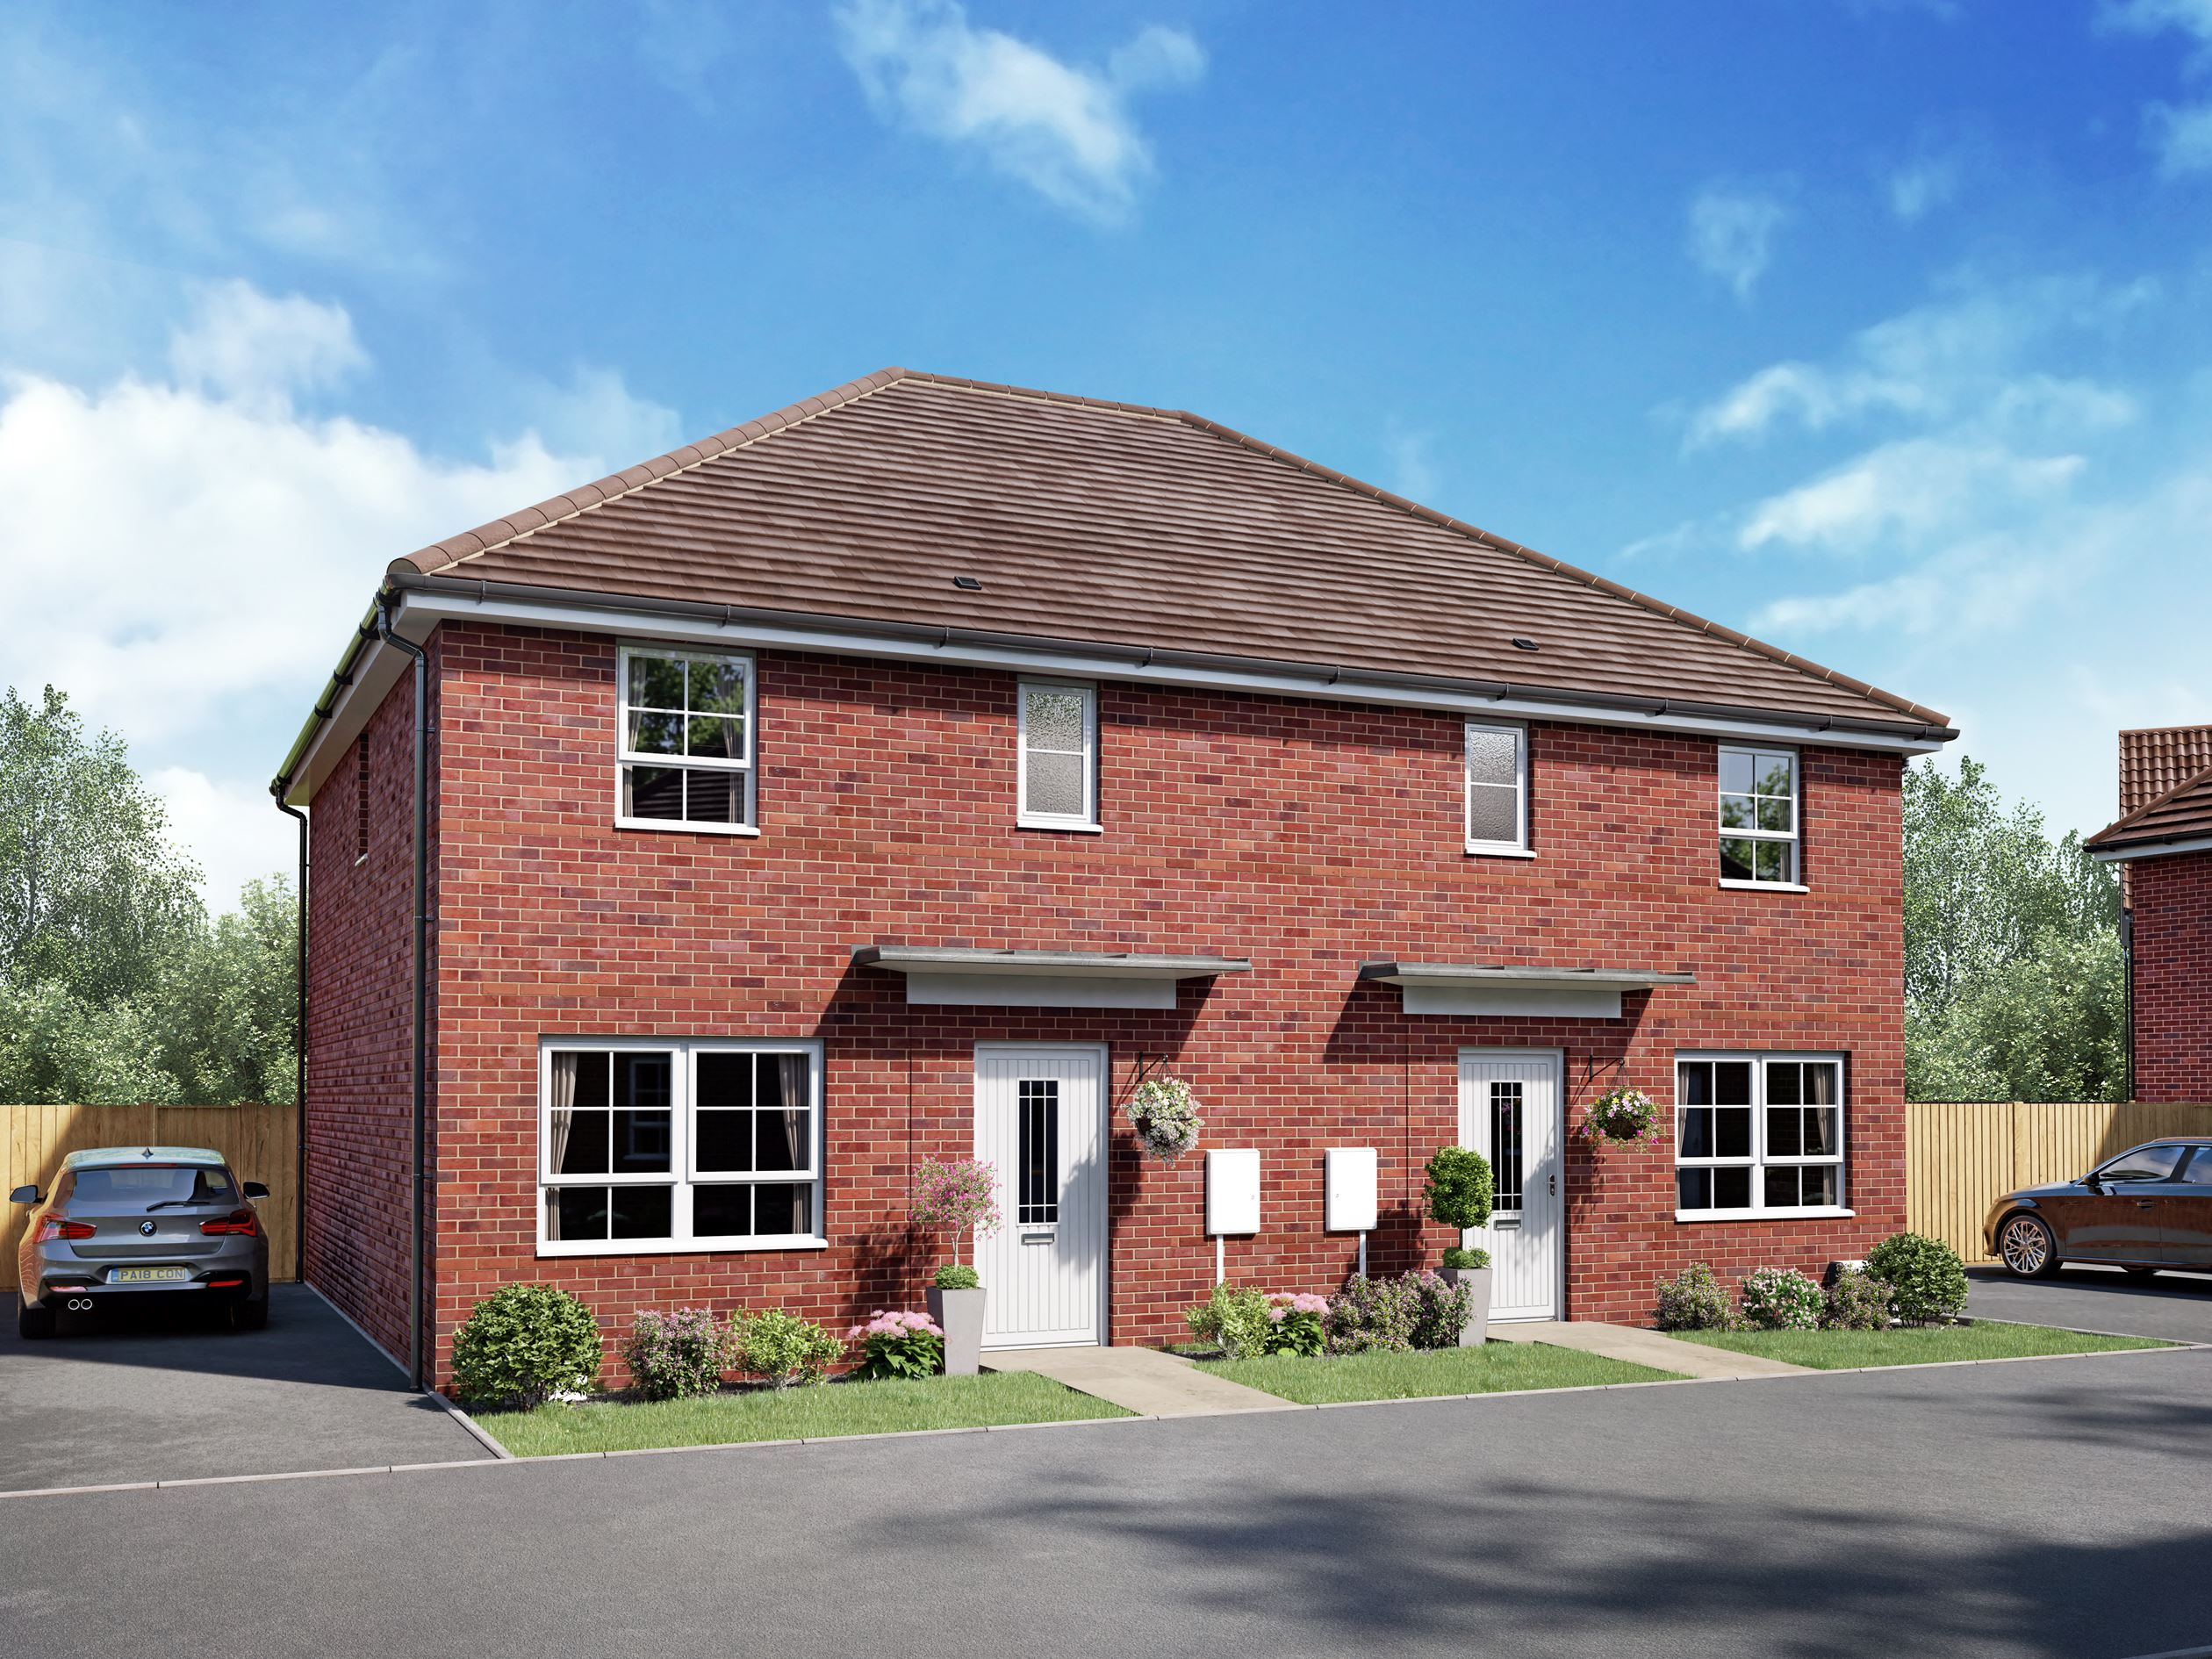 Hoy Plot 123 and 124, a semi-detached home at Wayland Fields